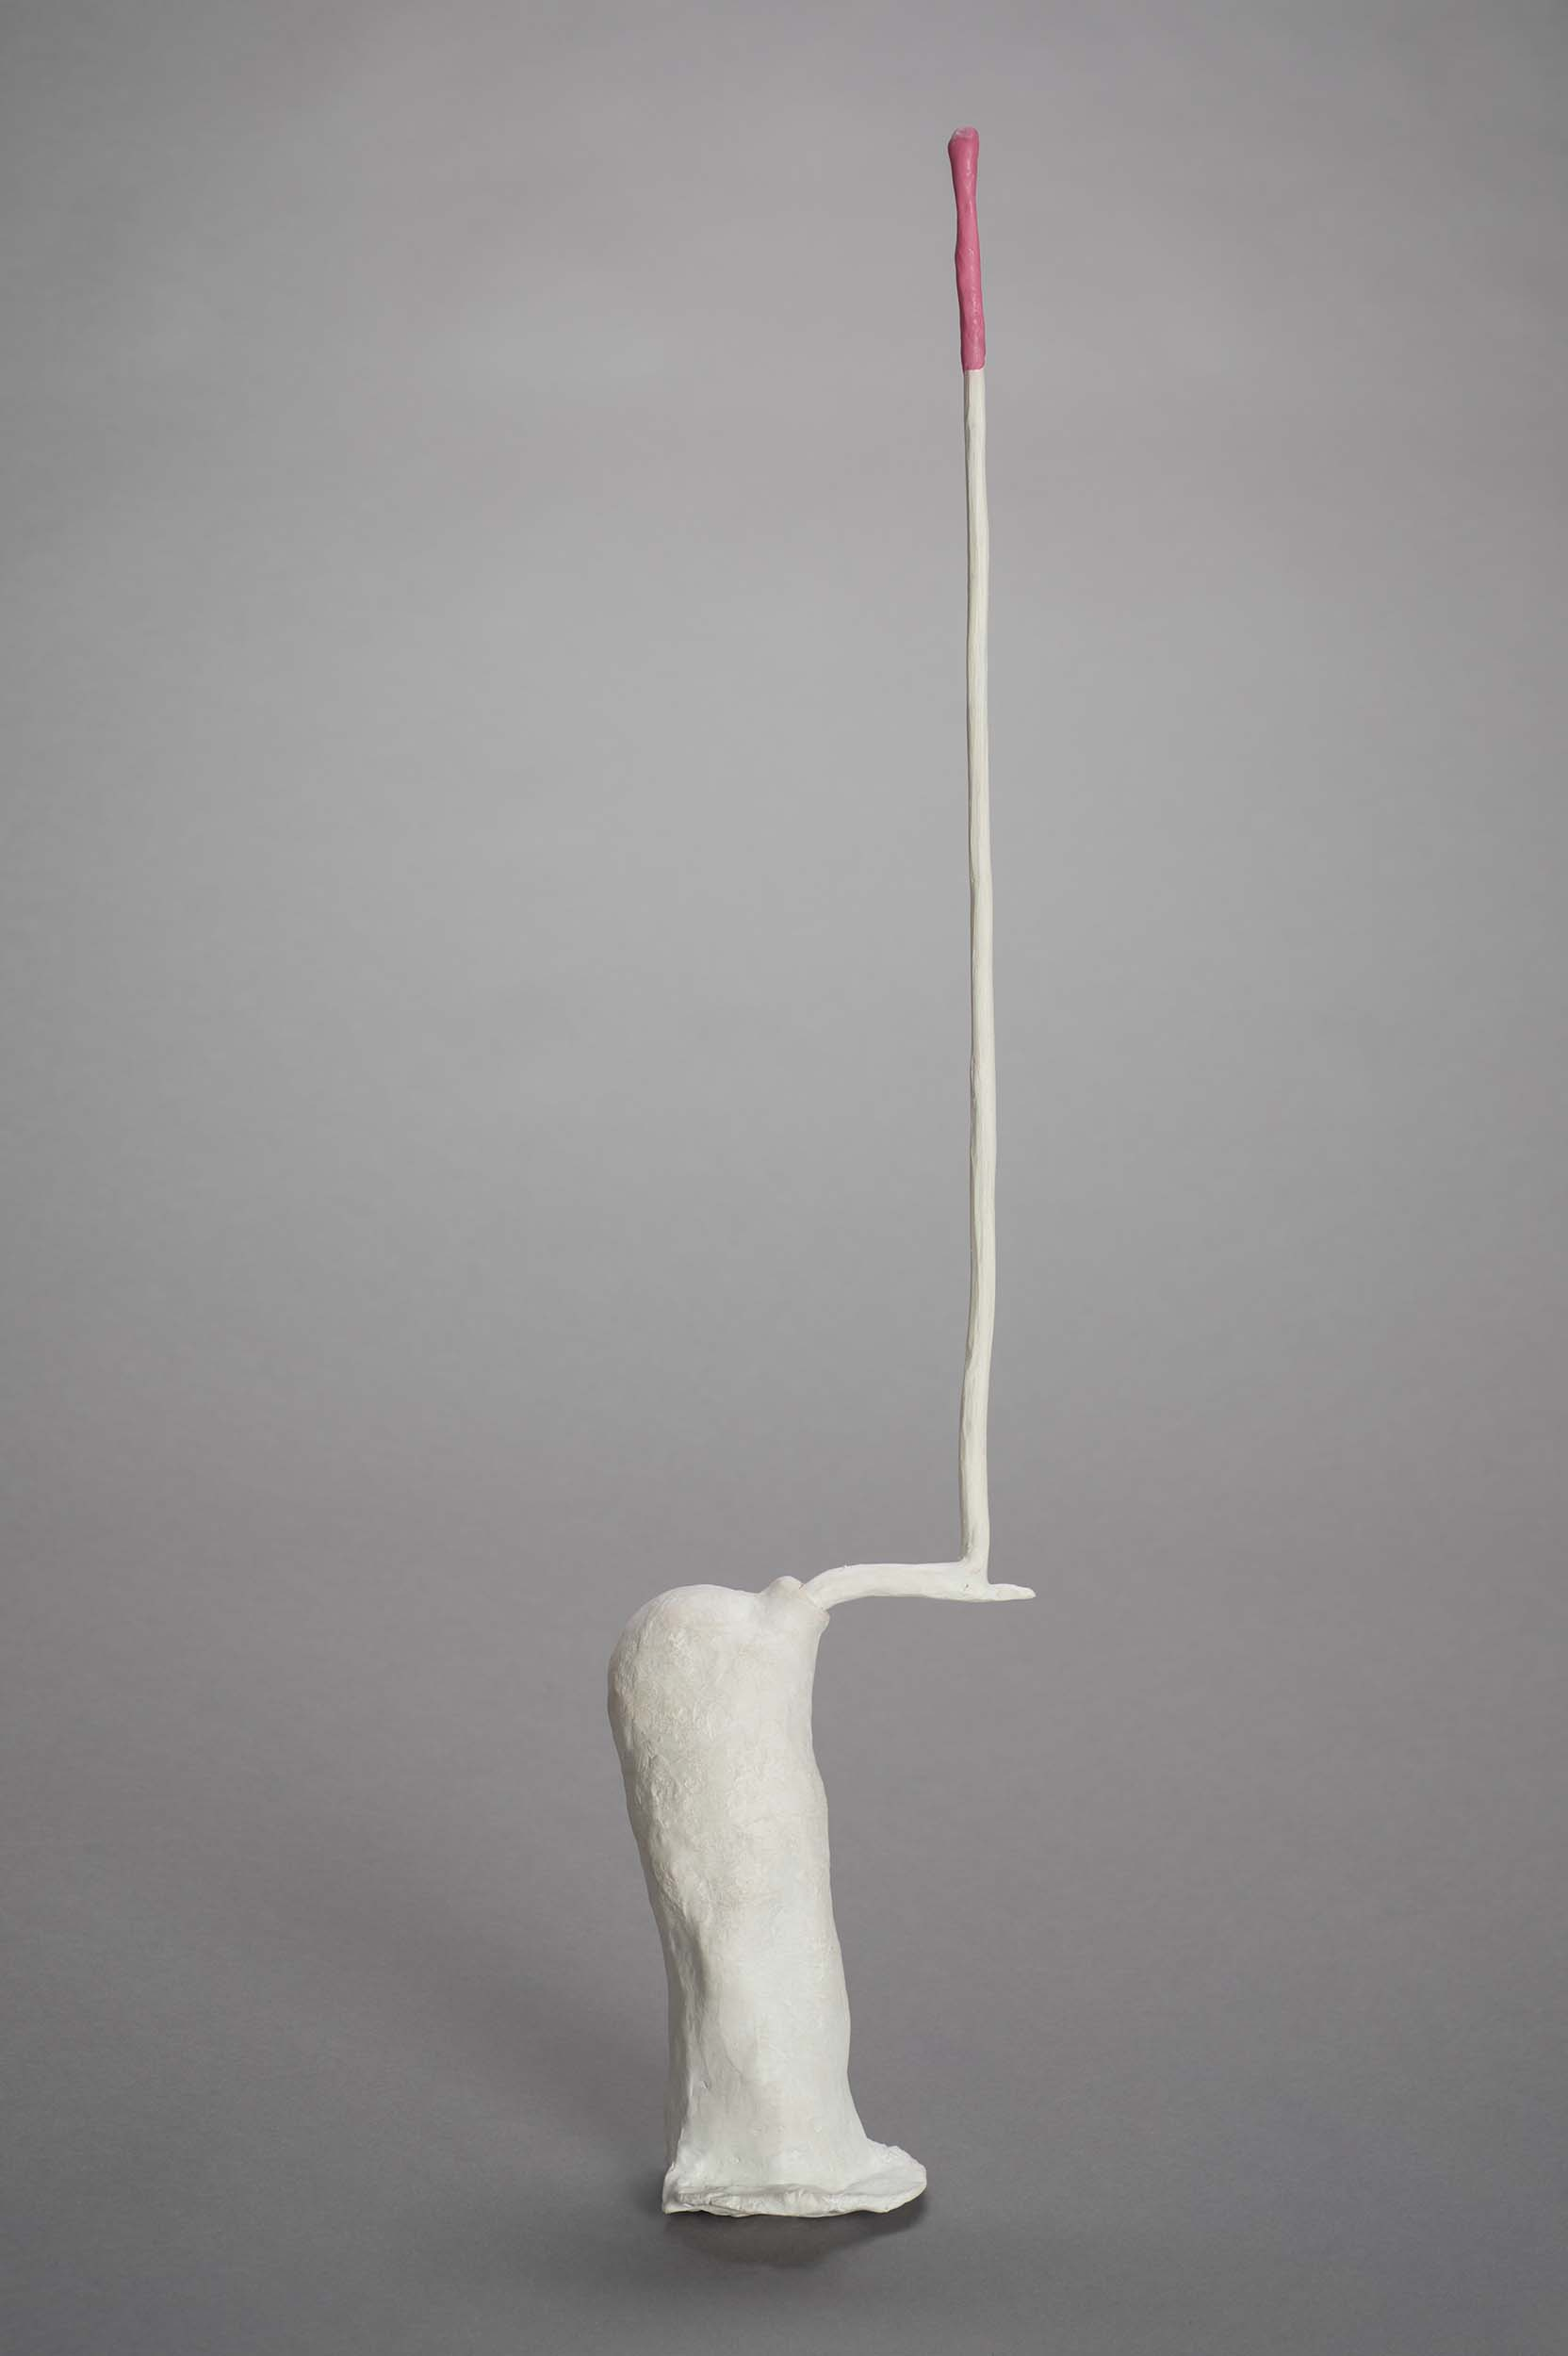 roberley bell, Something #14 2016 25 x 4 x 4 Porcelain, wood colored clay